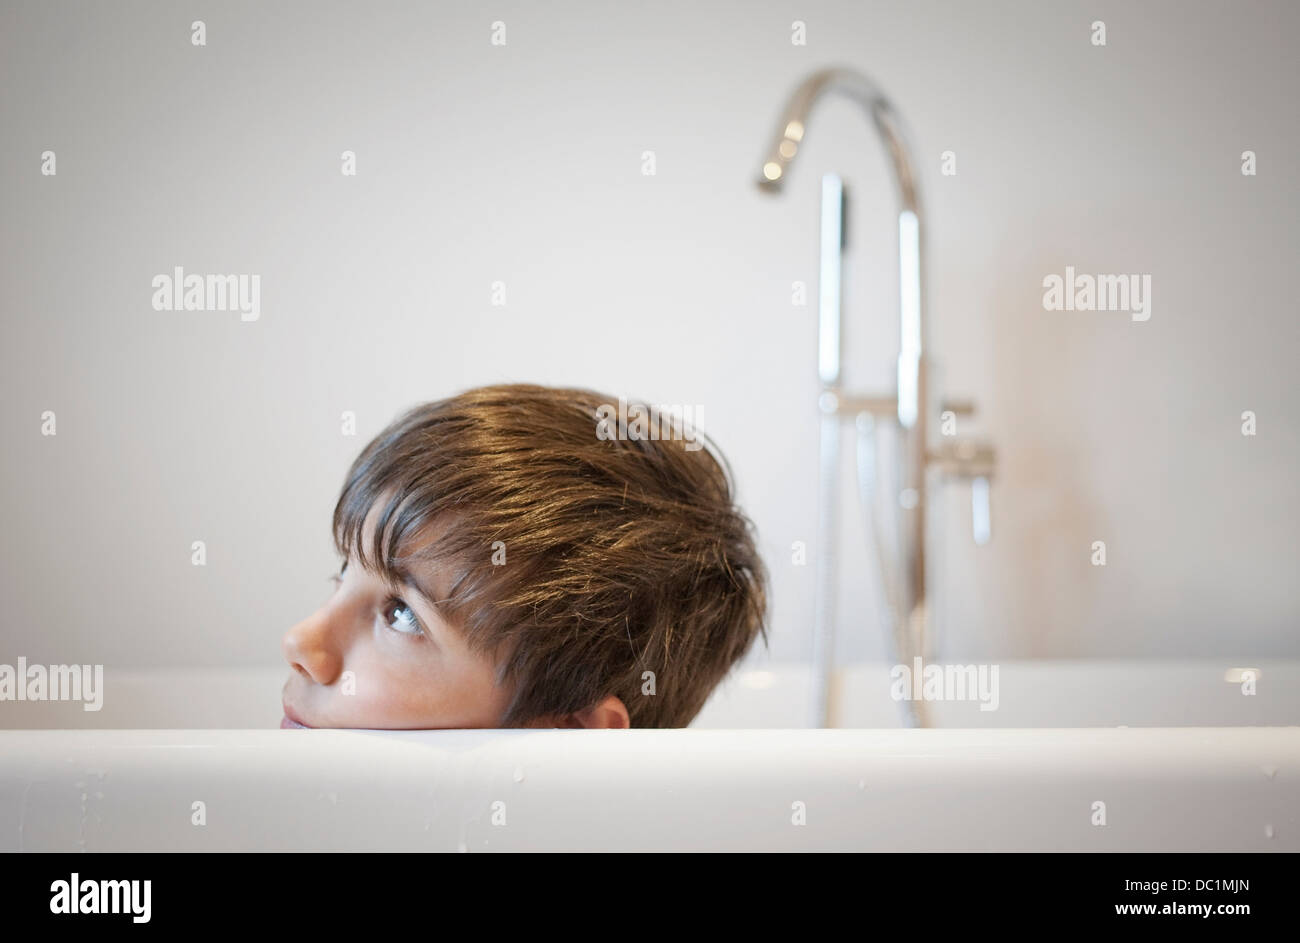 Head shot of young boy in bath Photo Stock